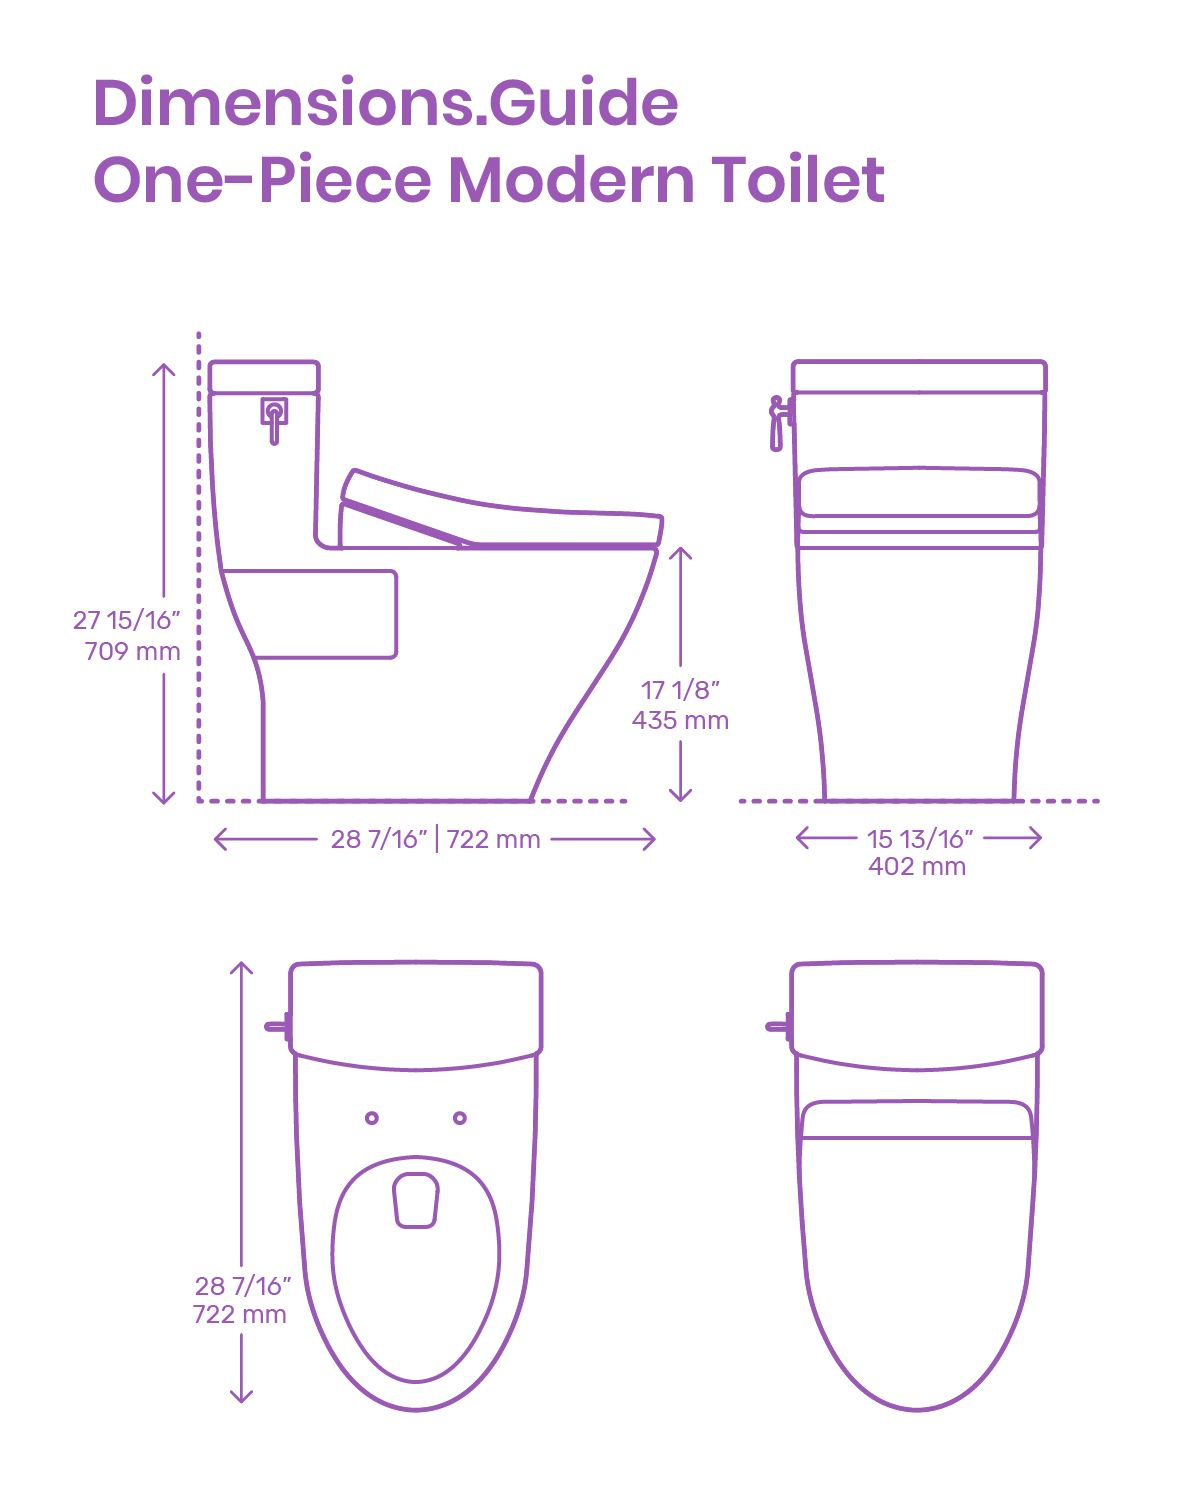 One Piece Modern Toilets Are Sleek Contemporary Fixtures With Curves And Forms Designed To Compliment A Modern Toilet Bathroom Dimensions Bathroom Design Small